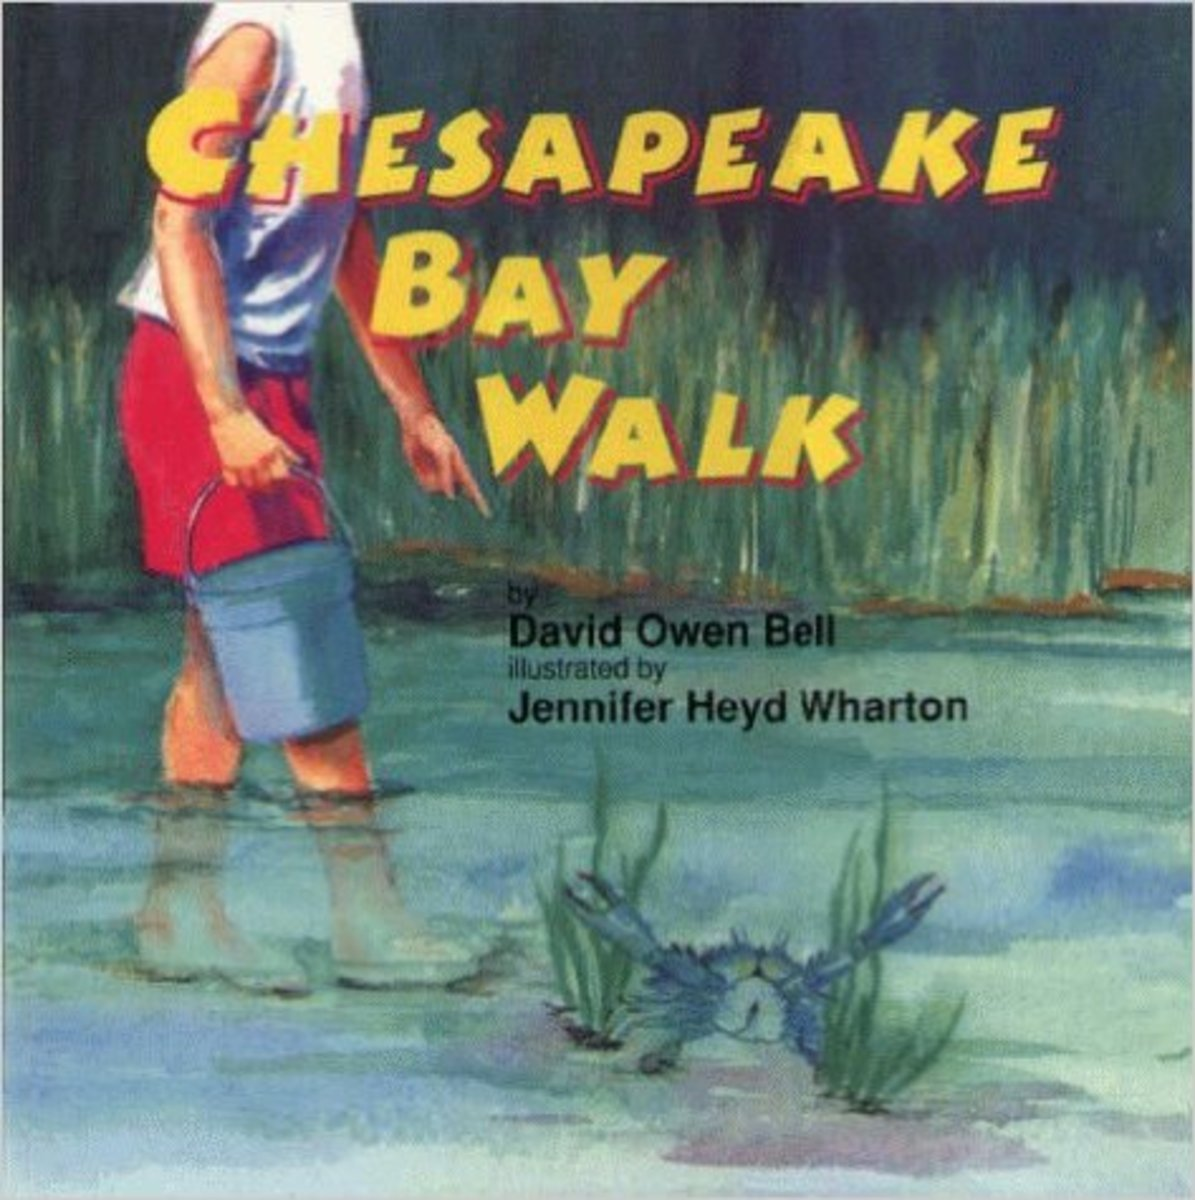 Chesapeake Bay Walk by David Owen Bell